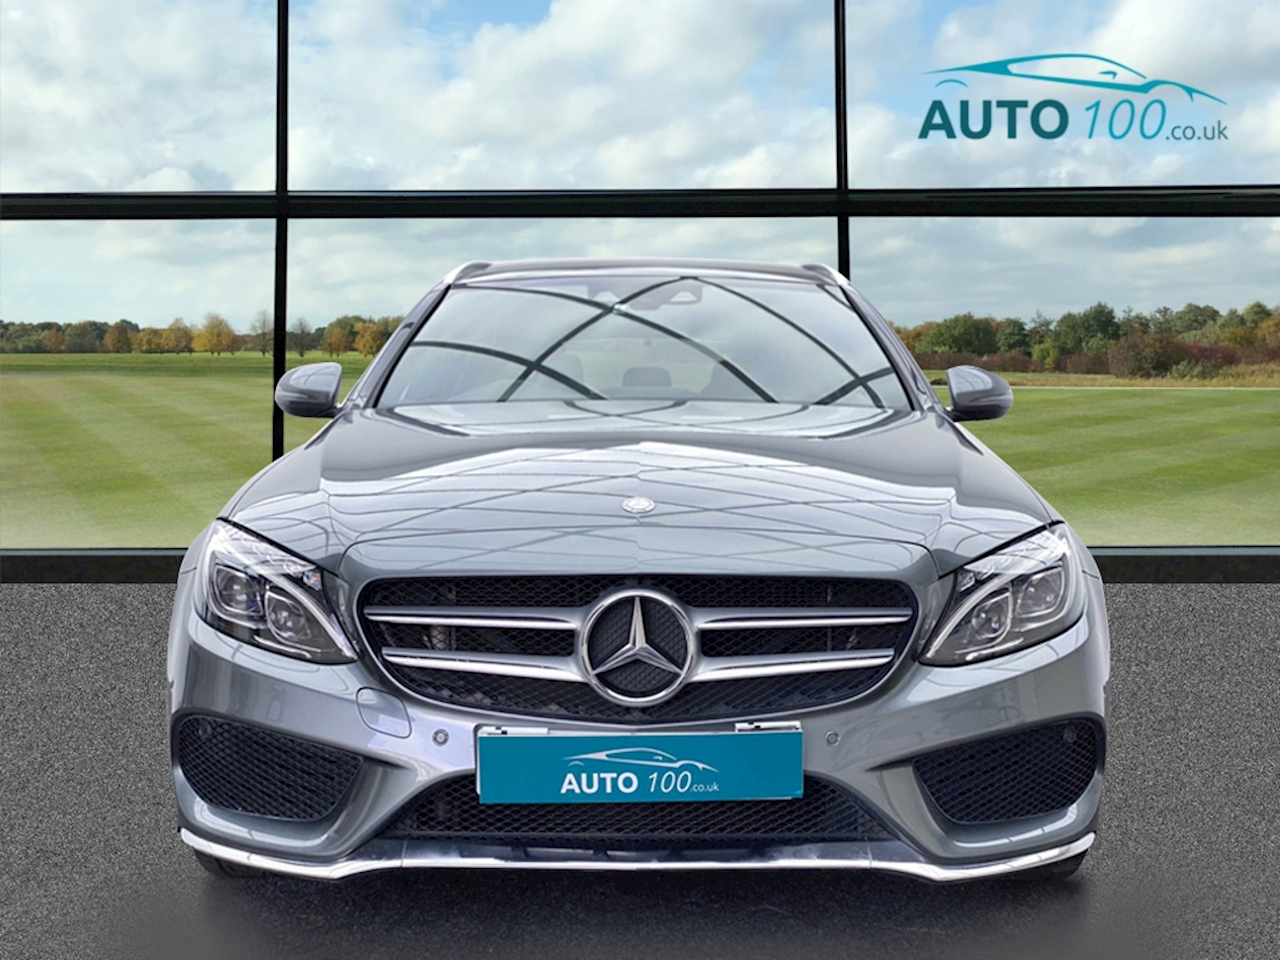 Mercedes-Benz C Class AMG Line Estate 2.1 G-Tronic+ Diesel